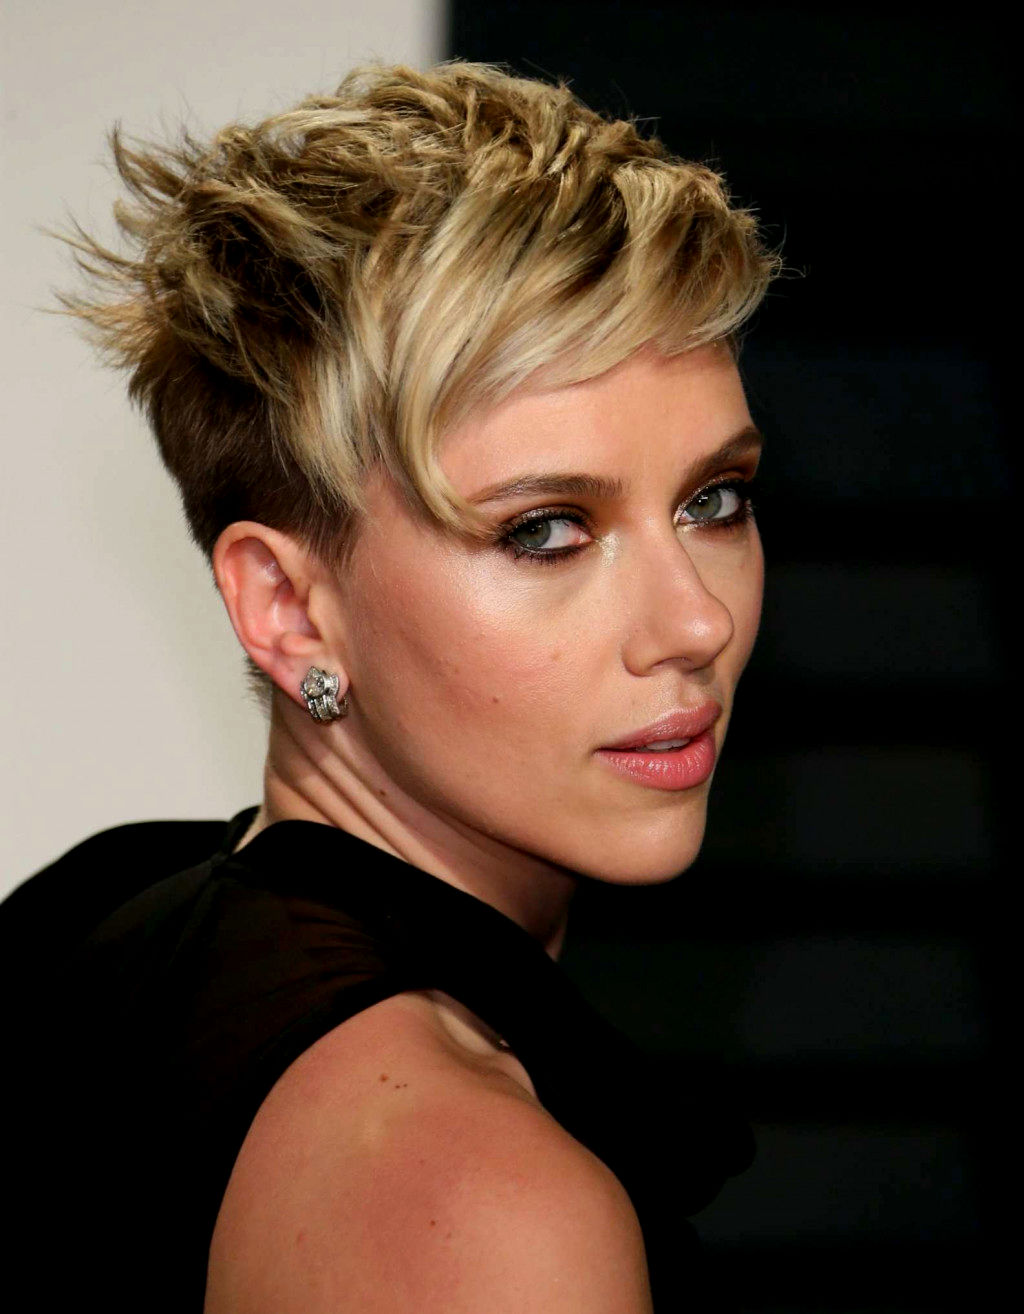 beautiful cool short hairstyles foto-Top cool short hairstyles photography